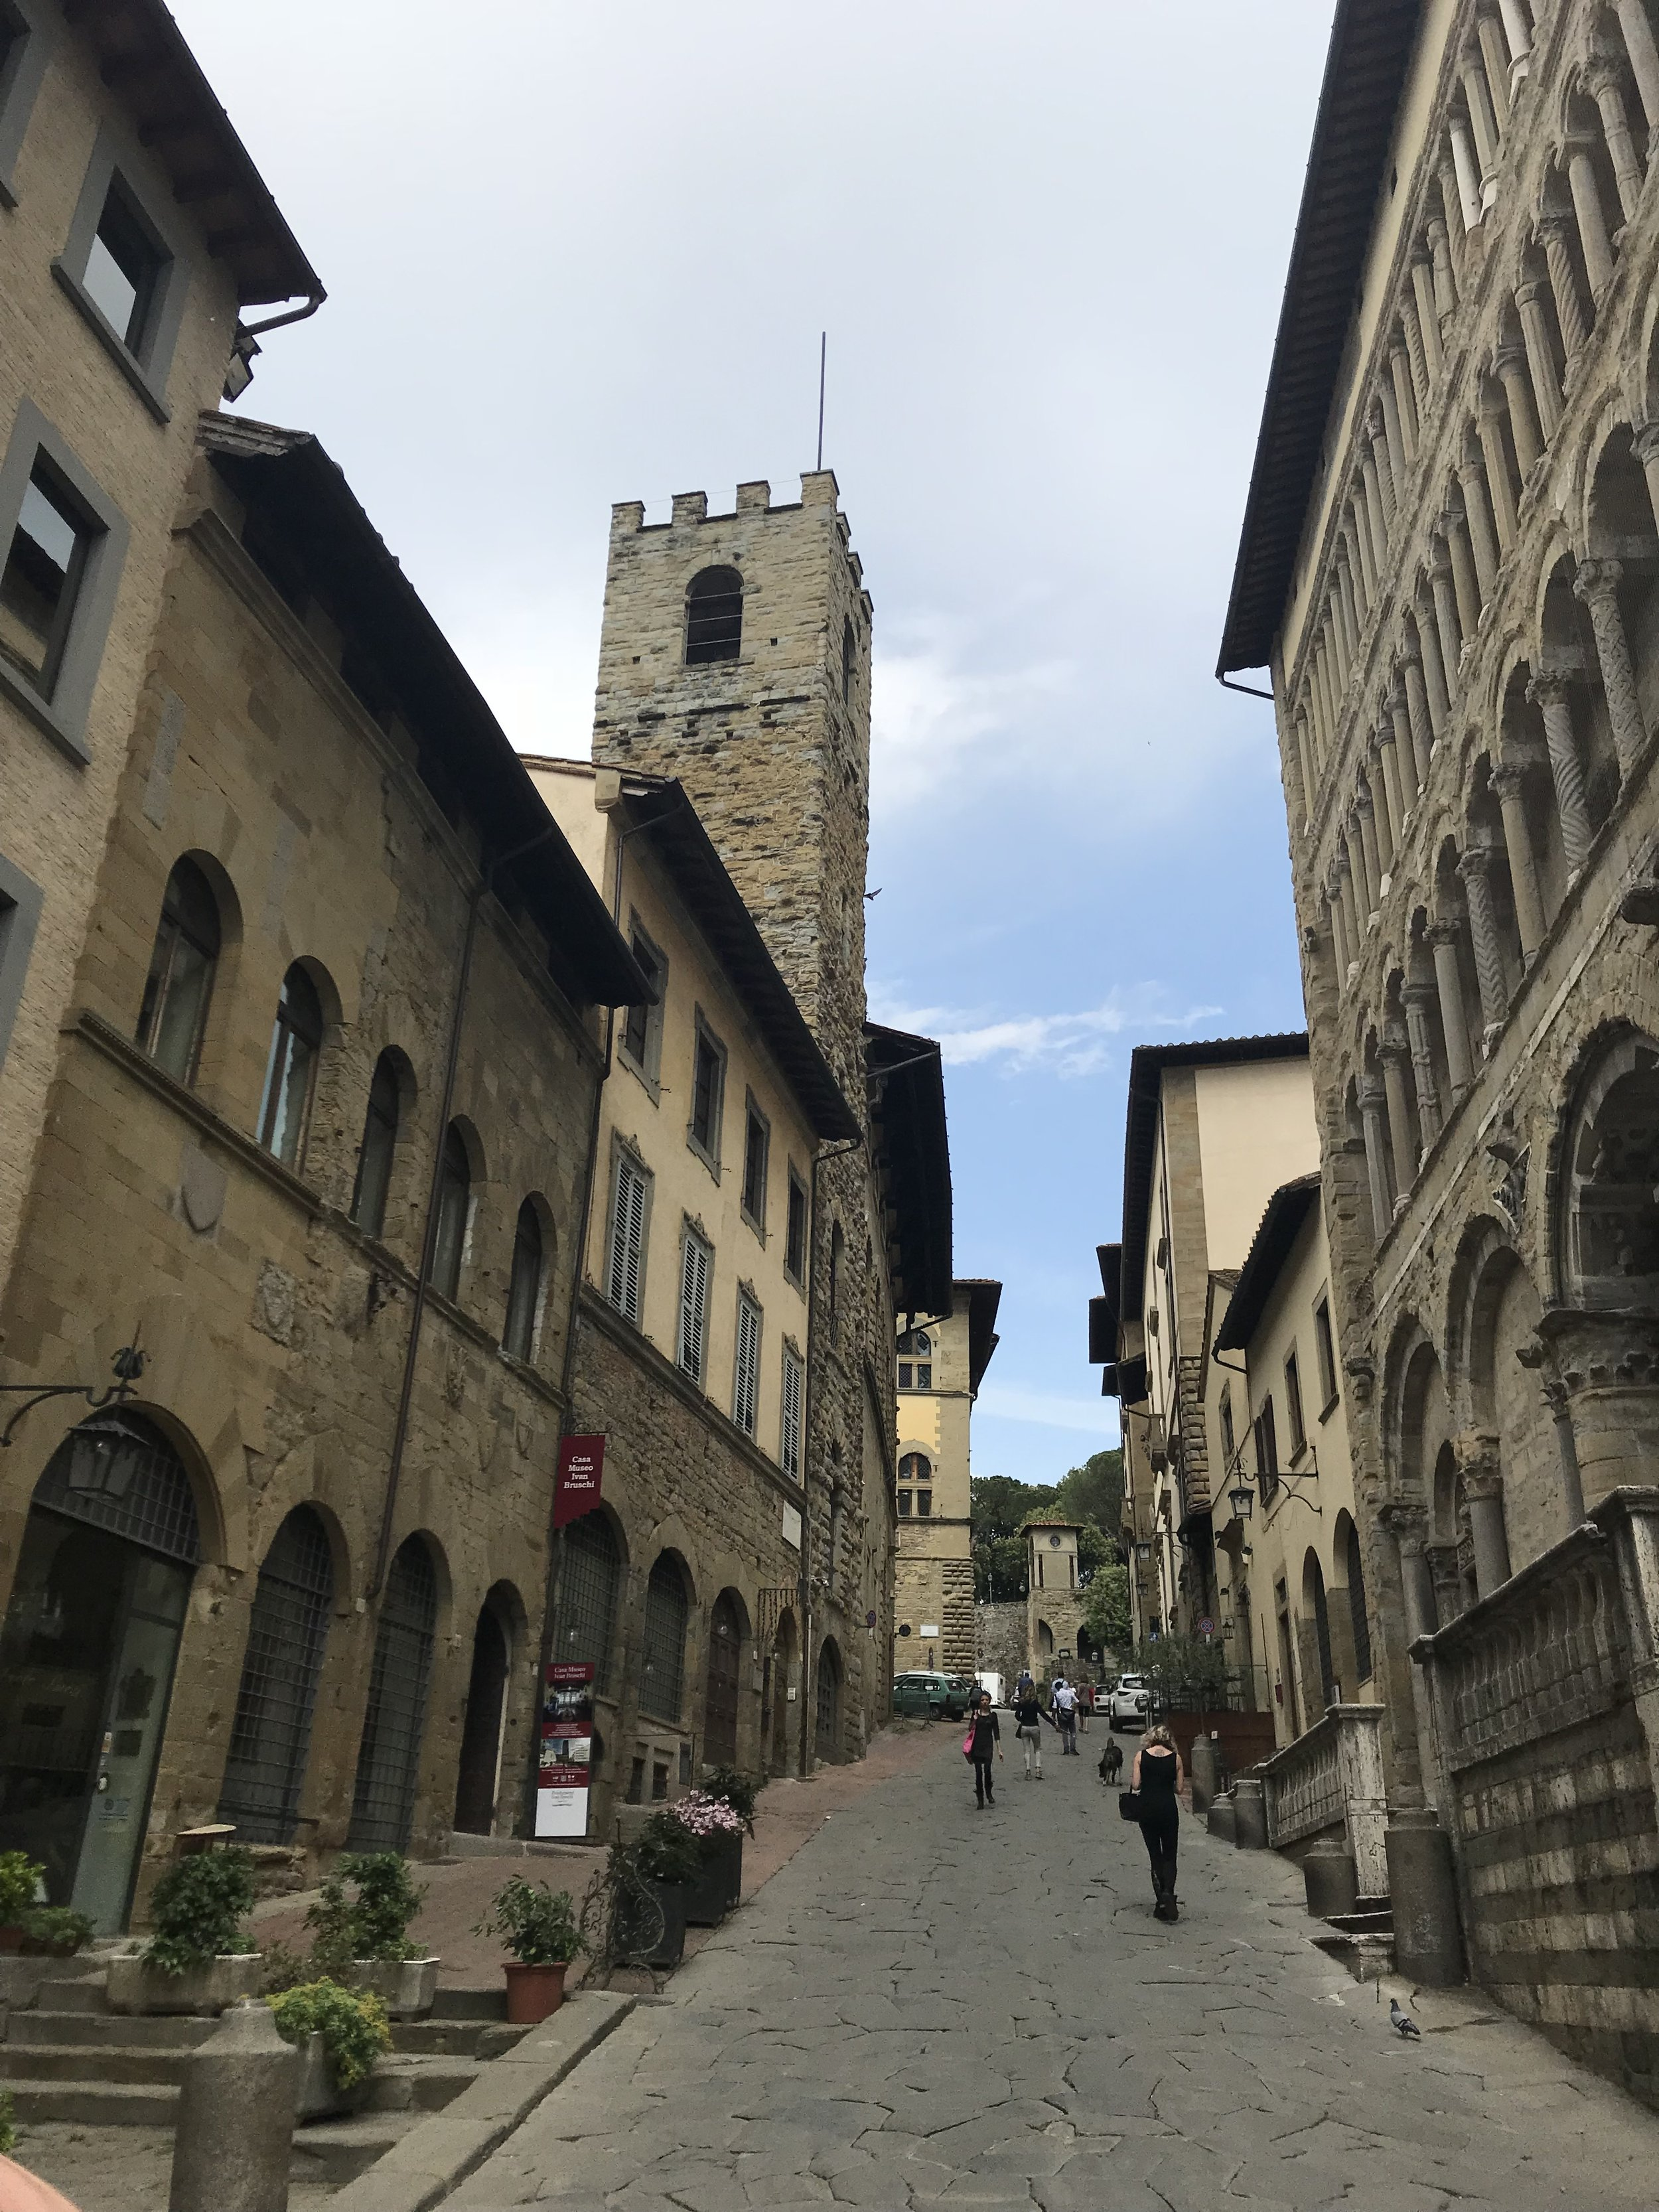 Walking the streets of Arezzo is relaxing, partly because of the city's beauty, partly because far few people visit this Tuscan treasure than some of the other towns in the region.